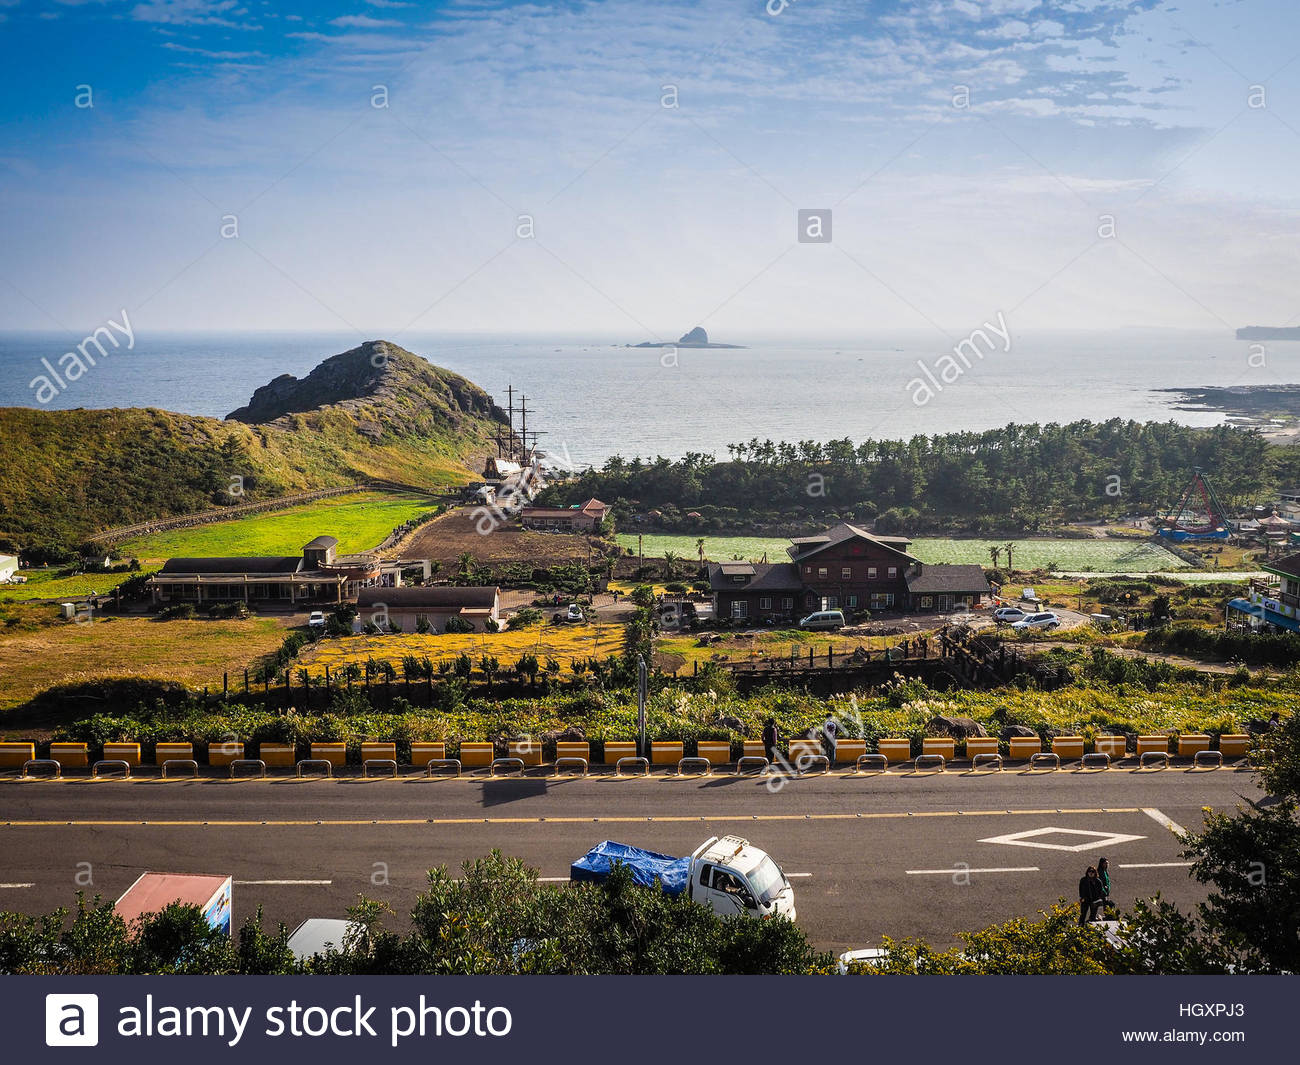 Sanbanggul-sa Sagye, Jeju Island, KOREA - NOVEMBER 12: The tourist visited Sanbanggulsa ...